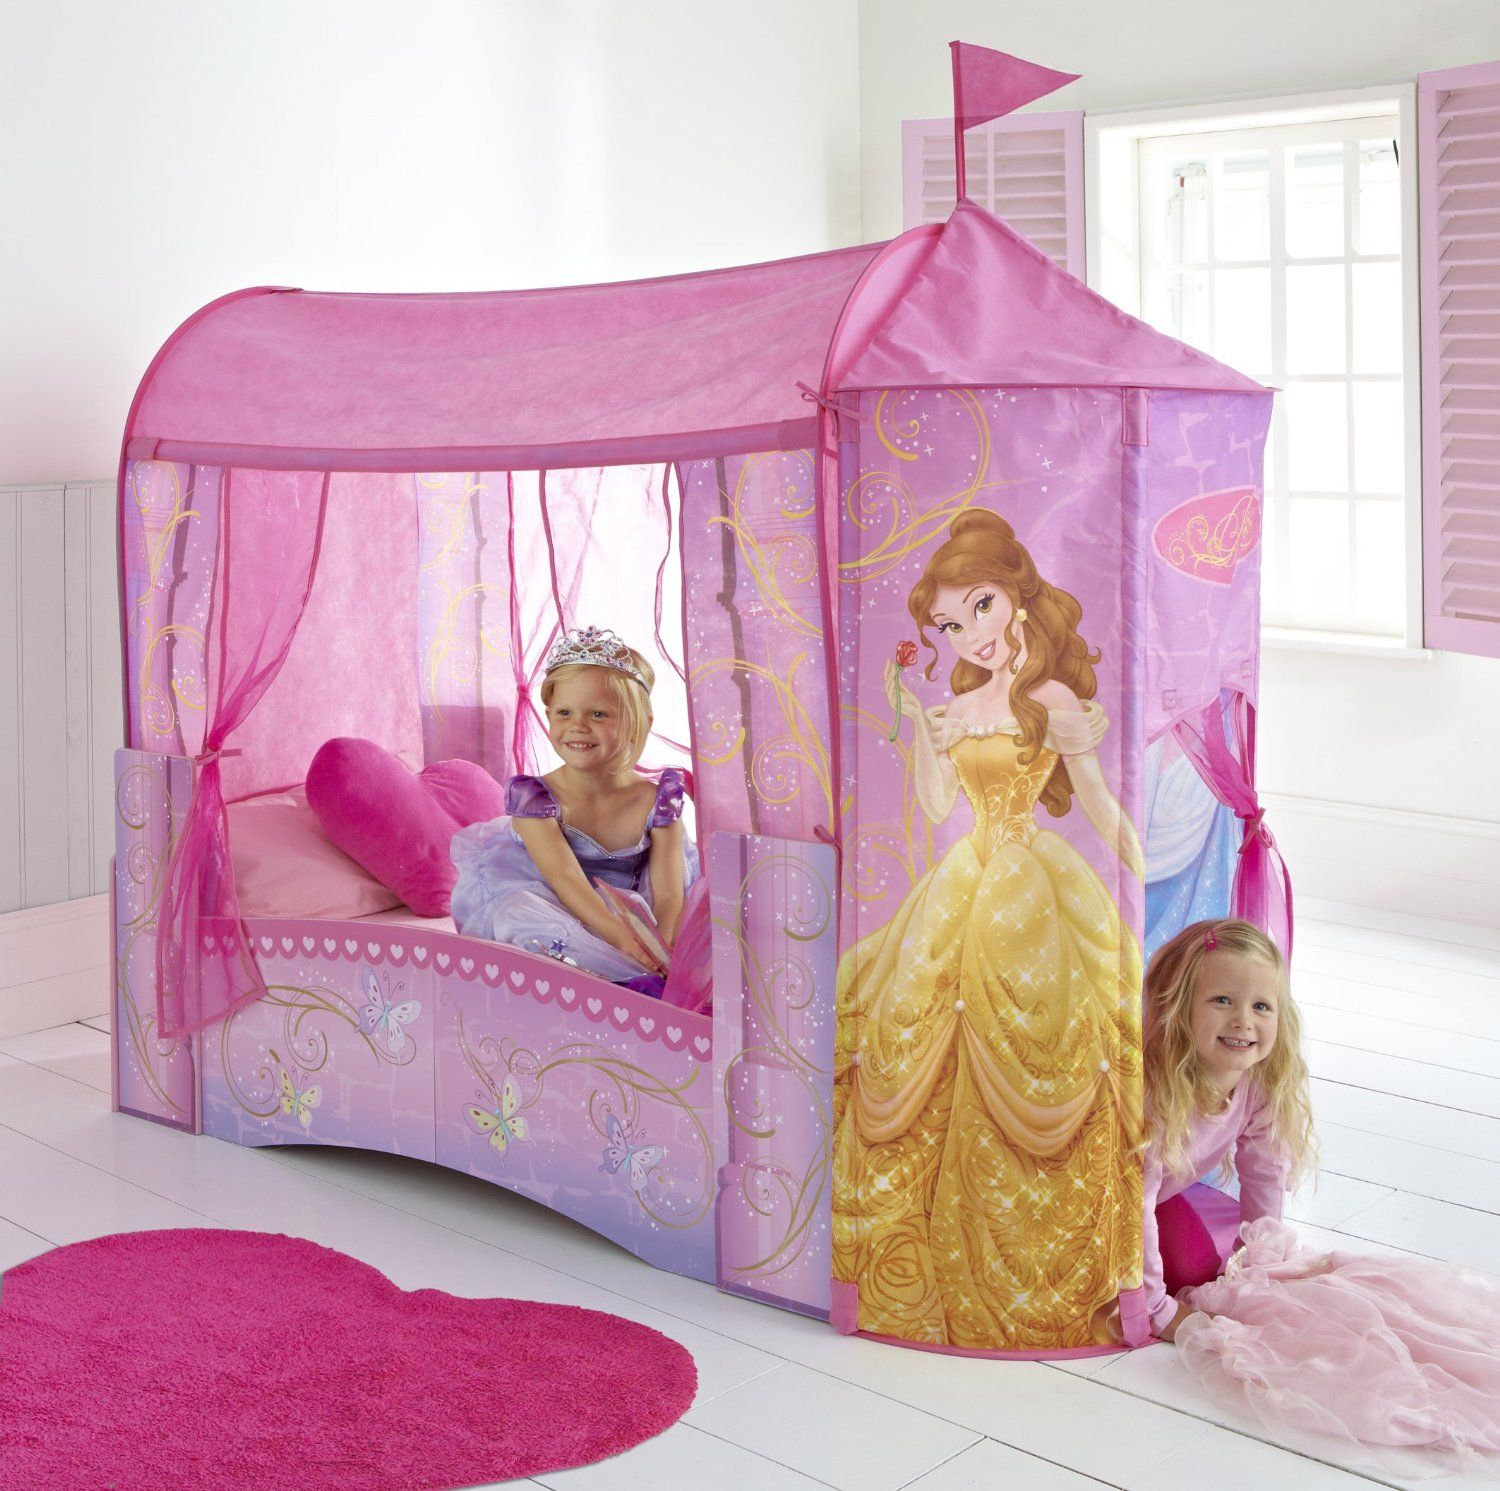 Disney Princess Toddler Bed By Hellohome Amazon Co Uk Toys Games Princess Toddler Bed Disney Princess Toddler Bed Disney Princess Bedding